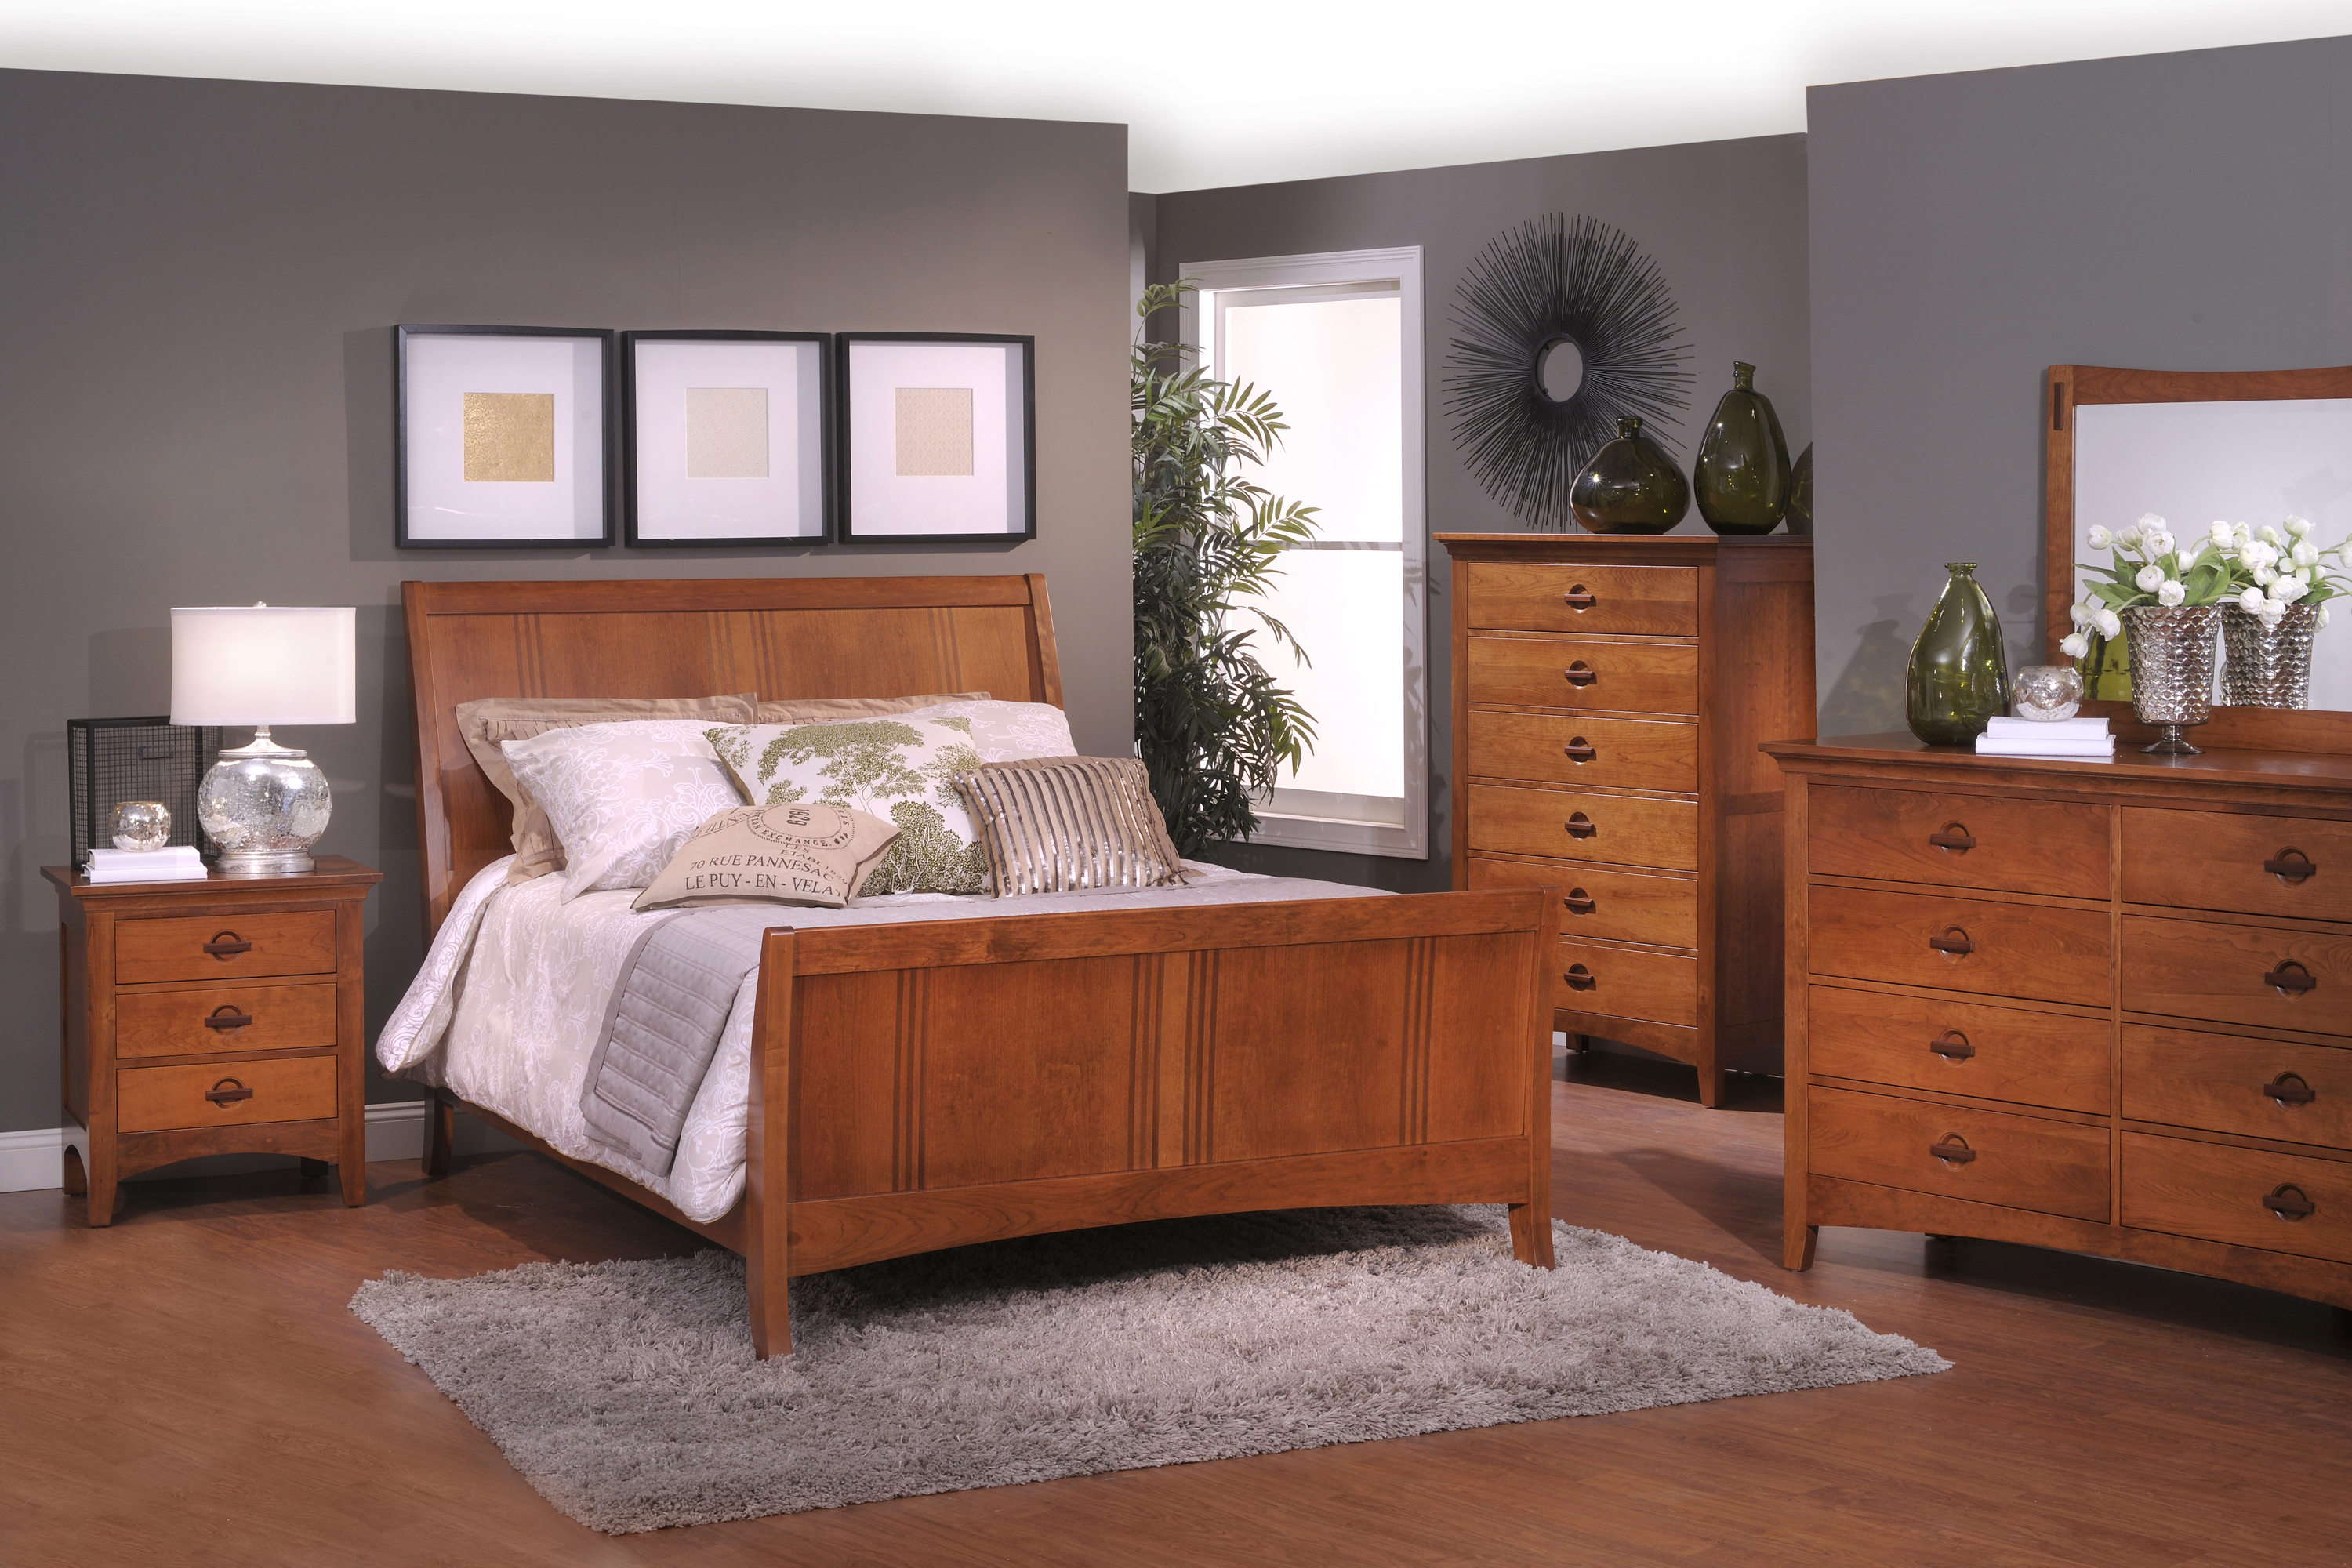 GreatLakesBedroomGroup1 GreatLakesBedroomGroup2 GreatLakesBedroomGroup3  Great Lakes Bedroom. bedroom furniture   Saugerties Furniture